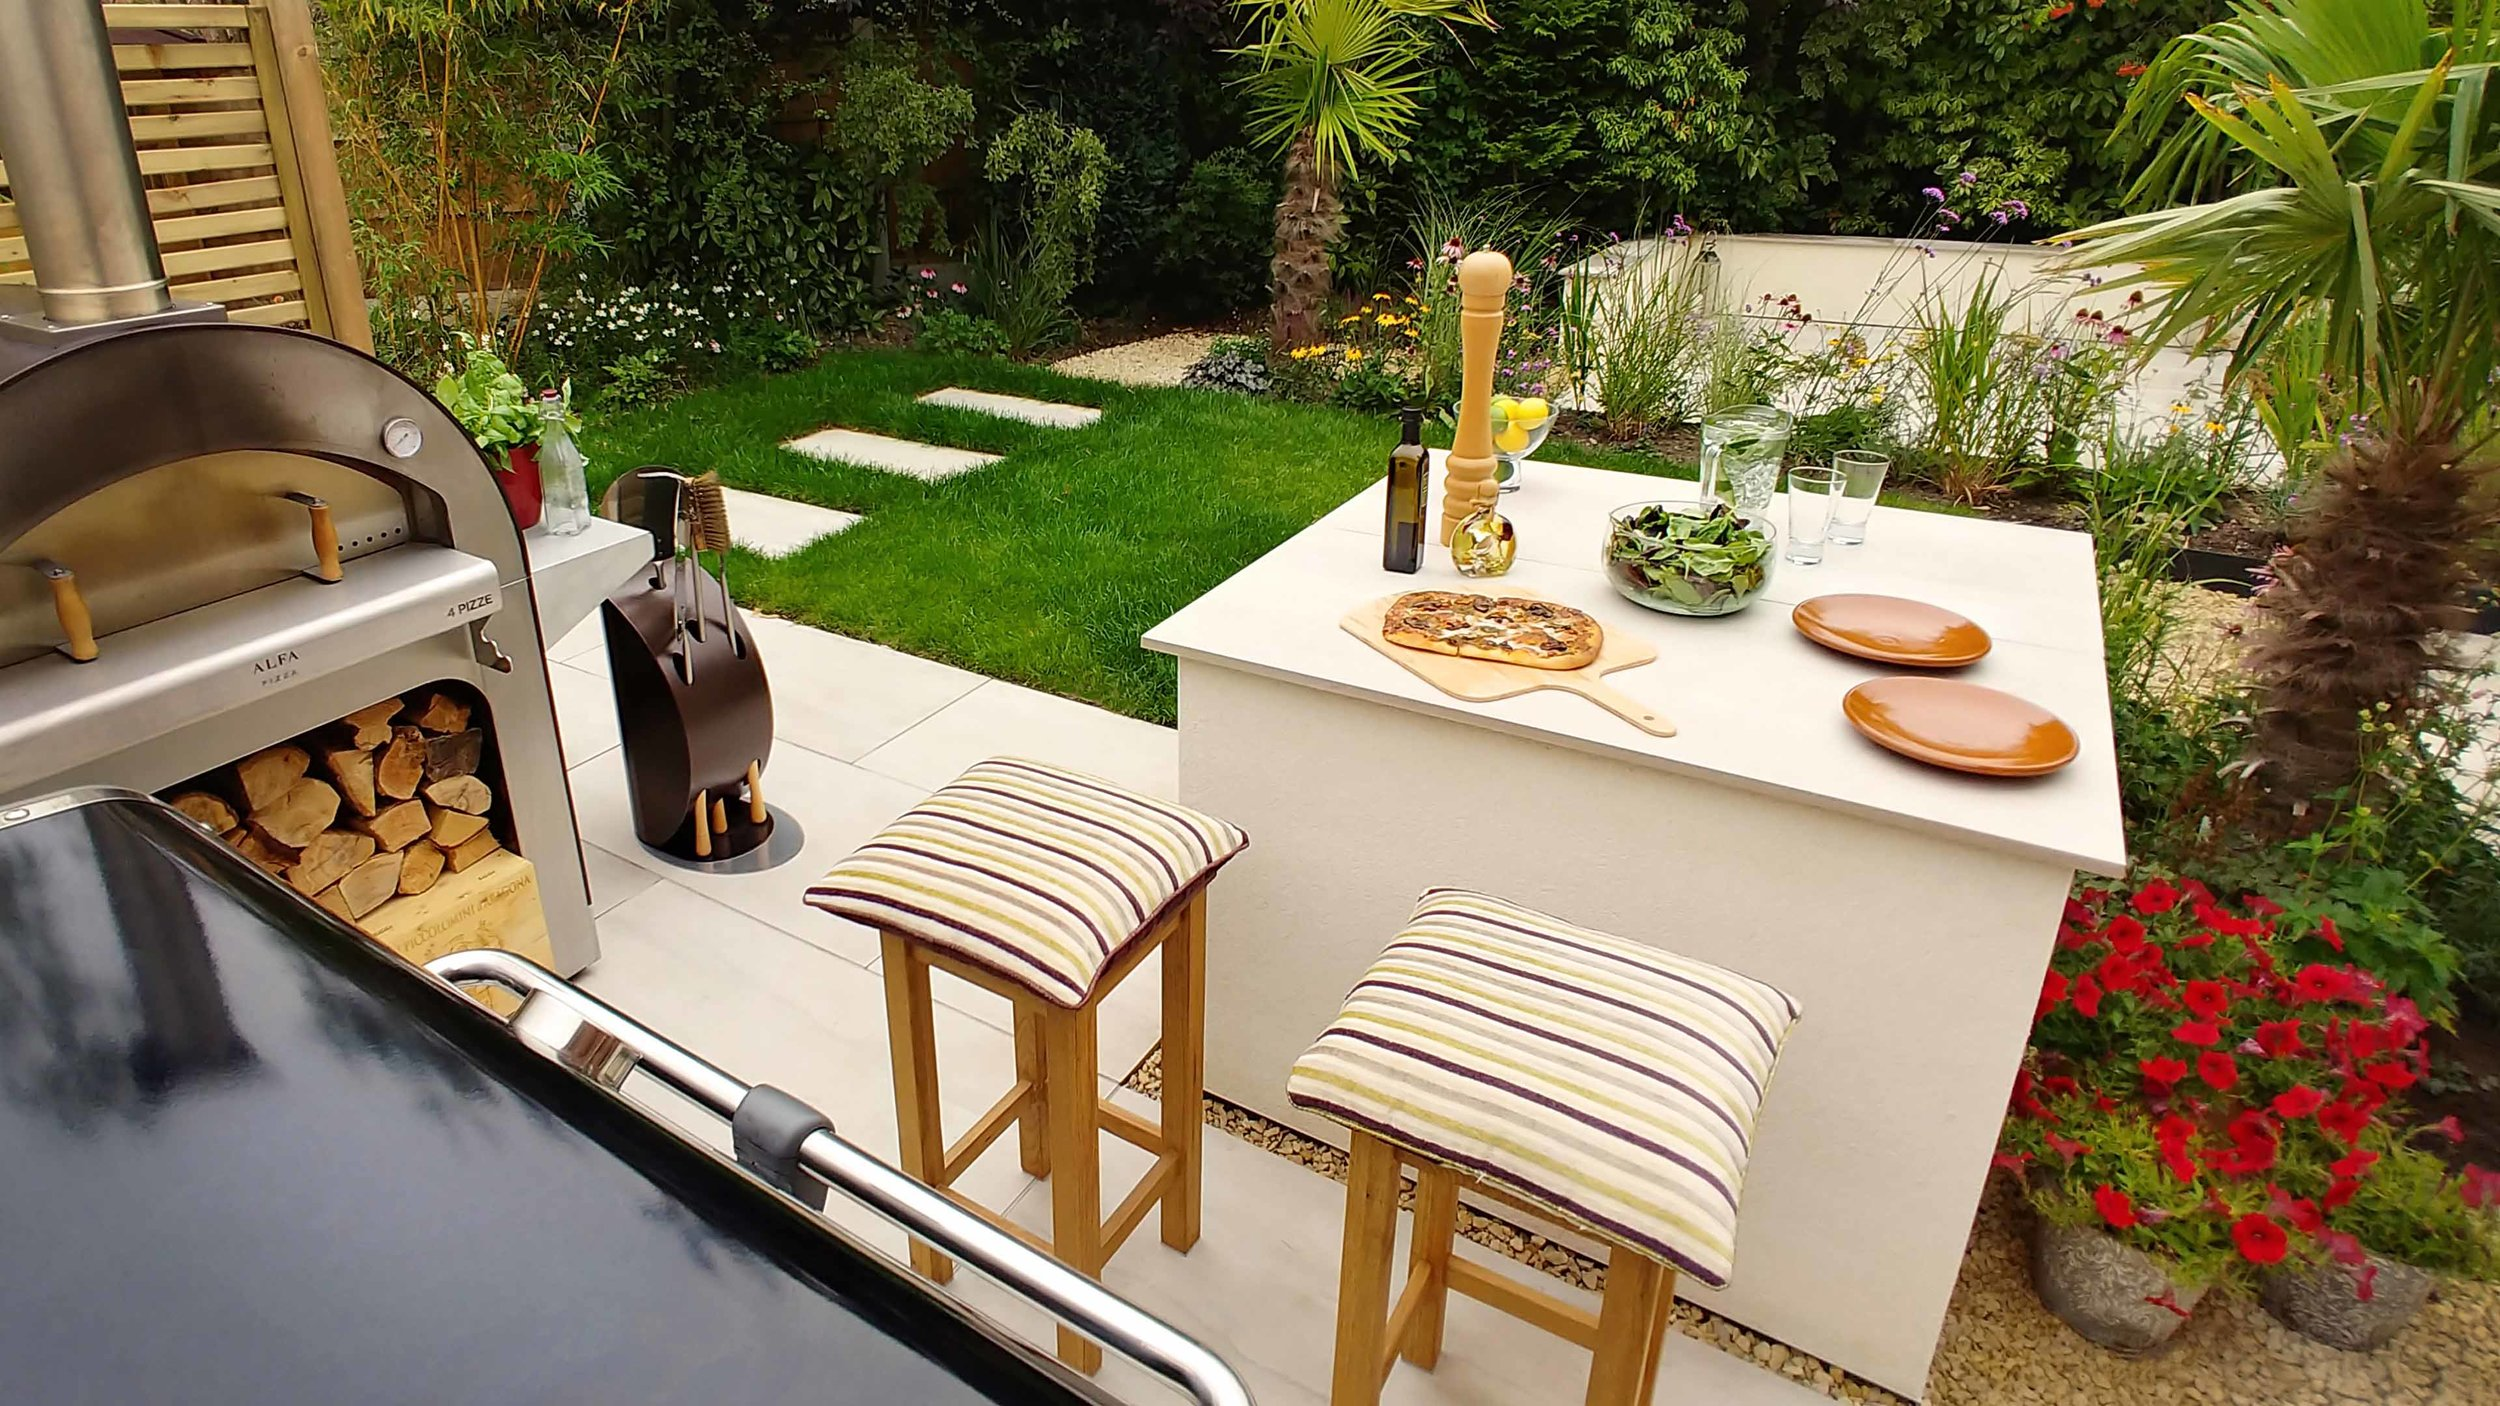 Garden Design Cheshire: Prairie Planting And Porcelain Patio: Outdoor Kitchen, Pizza Oven And Bar Area